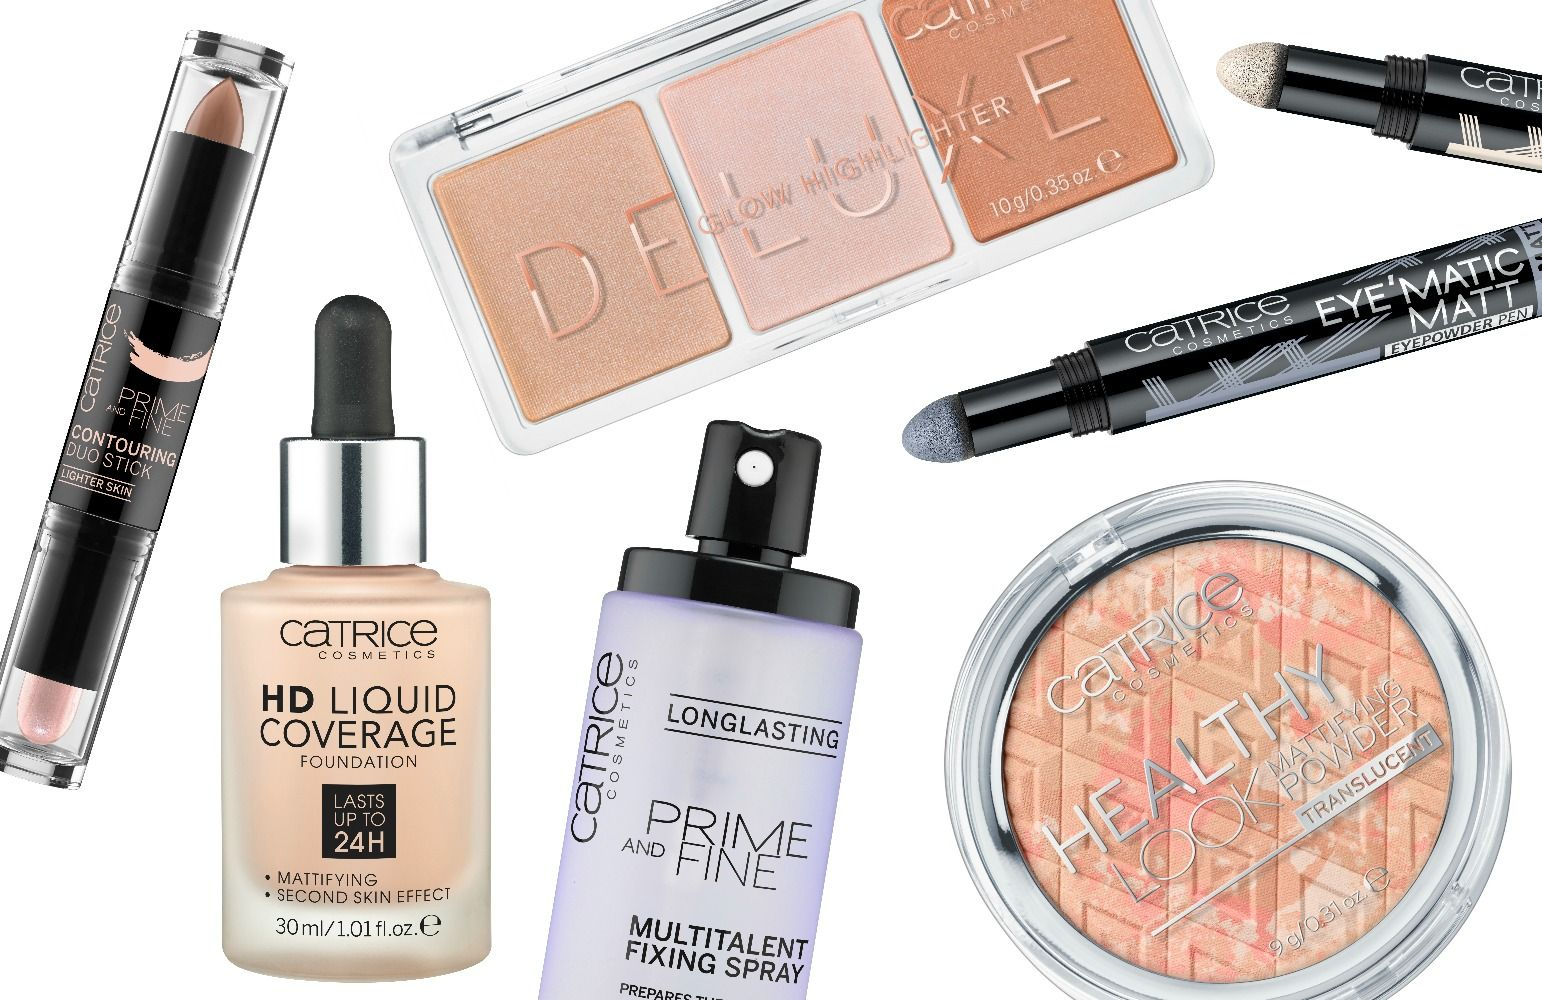 CATRICE COSMETICS FALL/WINTER MAKEUP COLLECTION 2016  - http://www.joliennathalie.com/2016/06/catrice-cosmetics-fall-winter-makeup-collection-2016.html